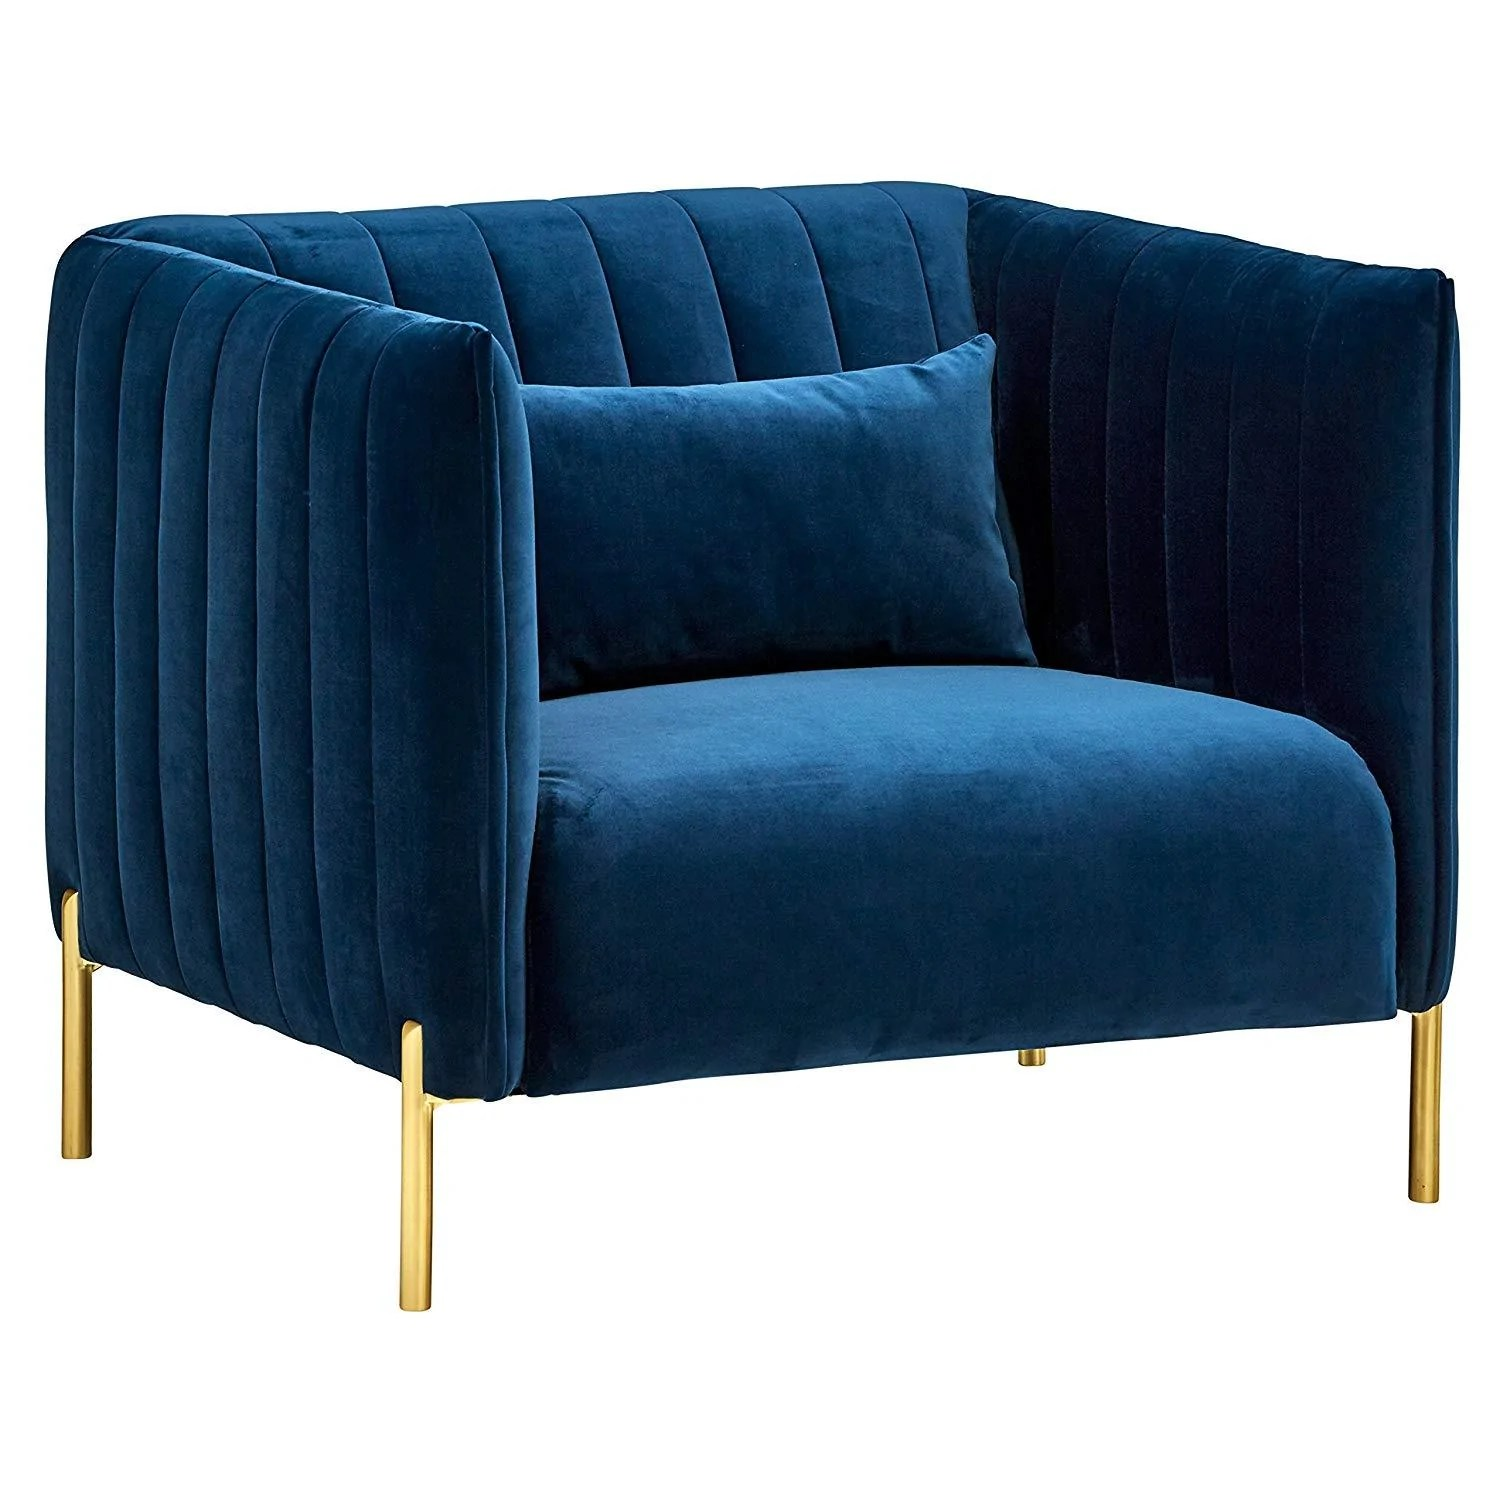 Details About Velvet Tufted Mid Century Modern Sofa 77 5 W Navy Blue